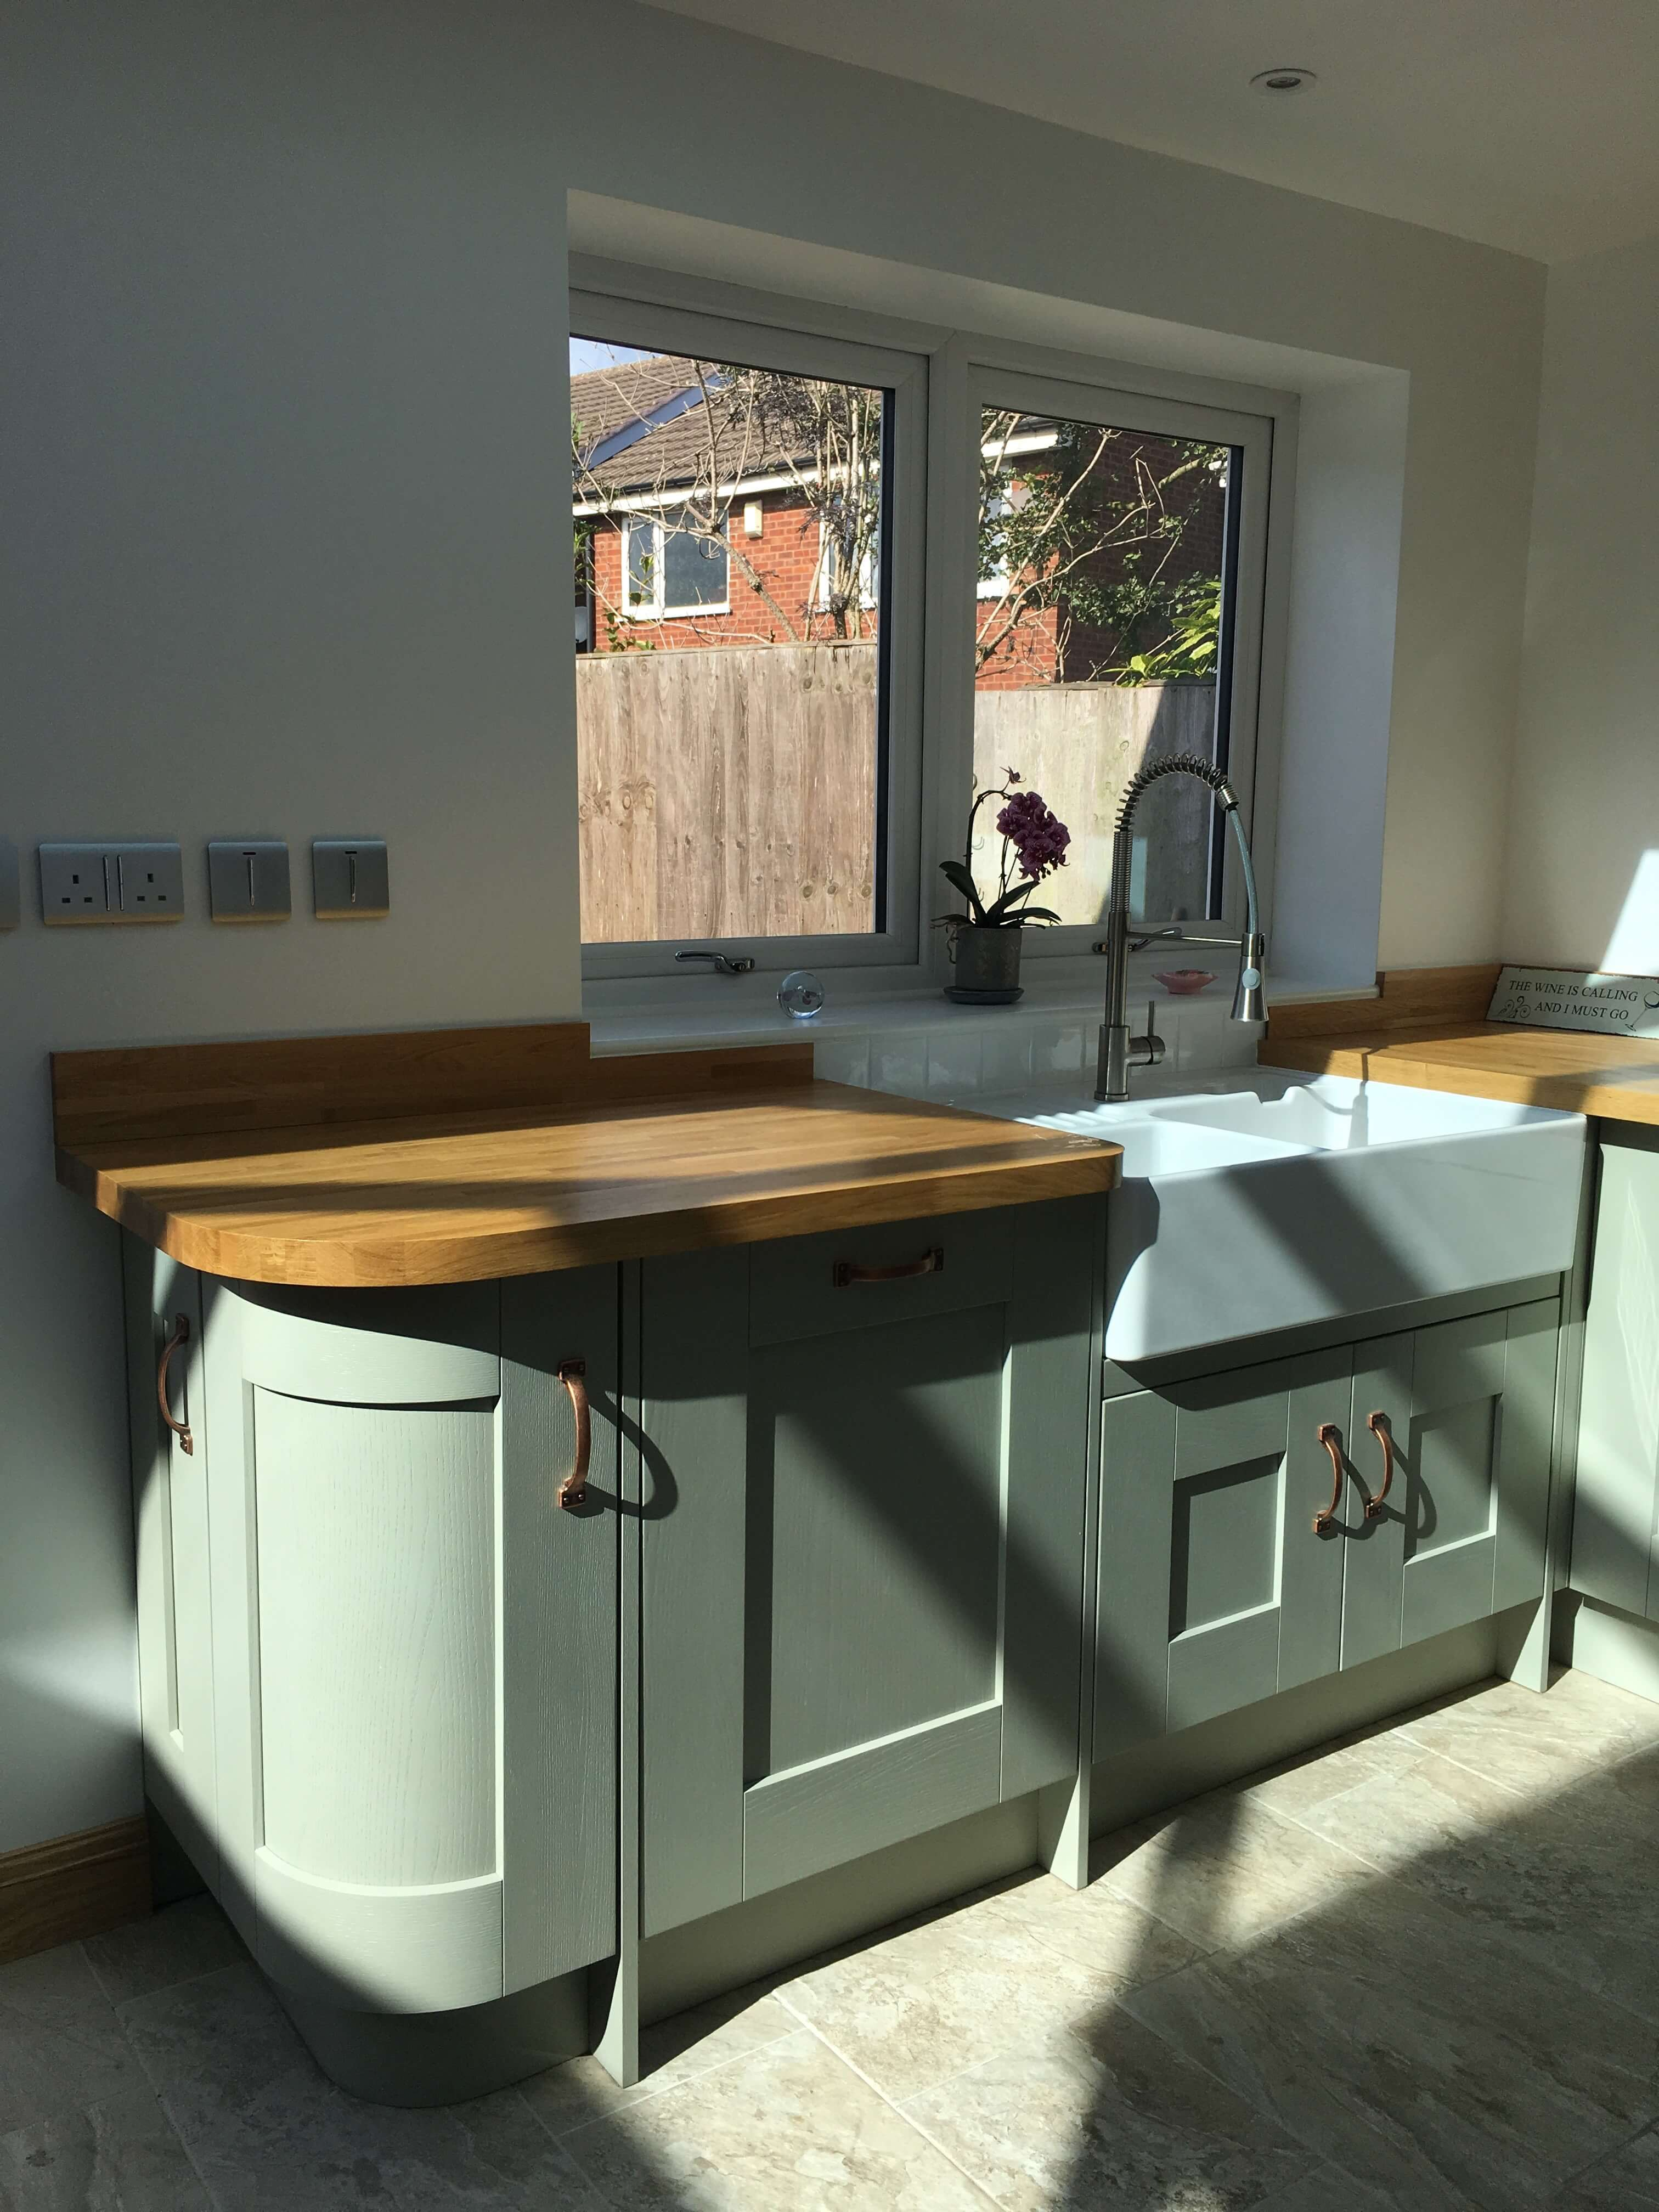 Austin kitchen in sage green with copper handles and Belfast sink